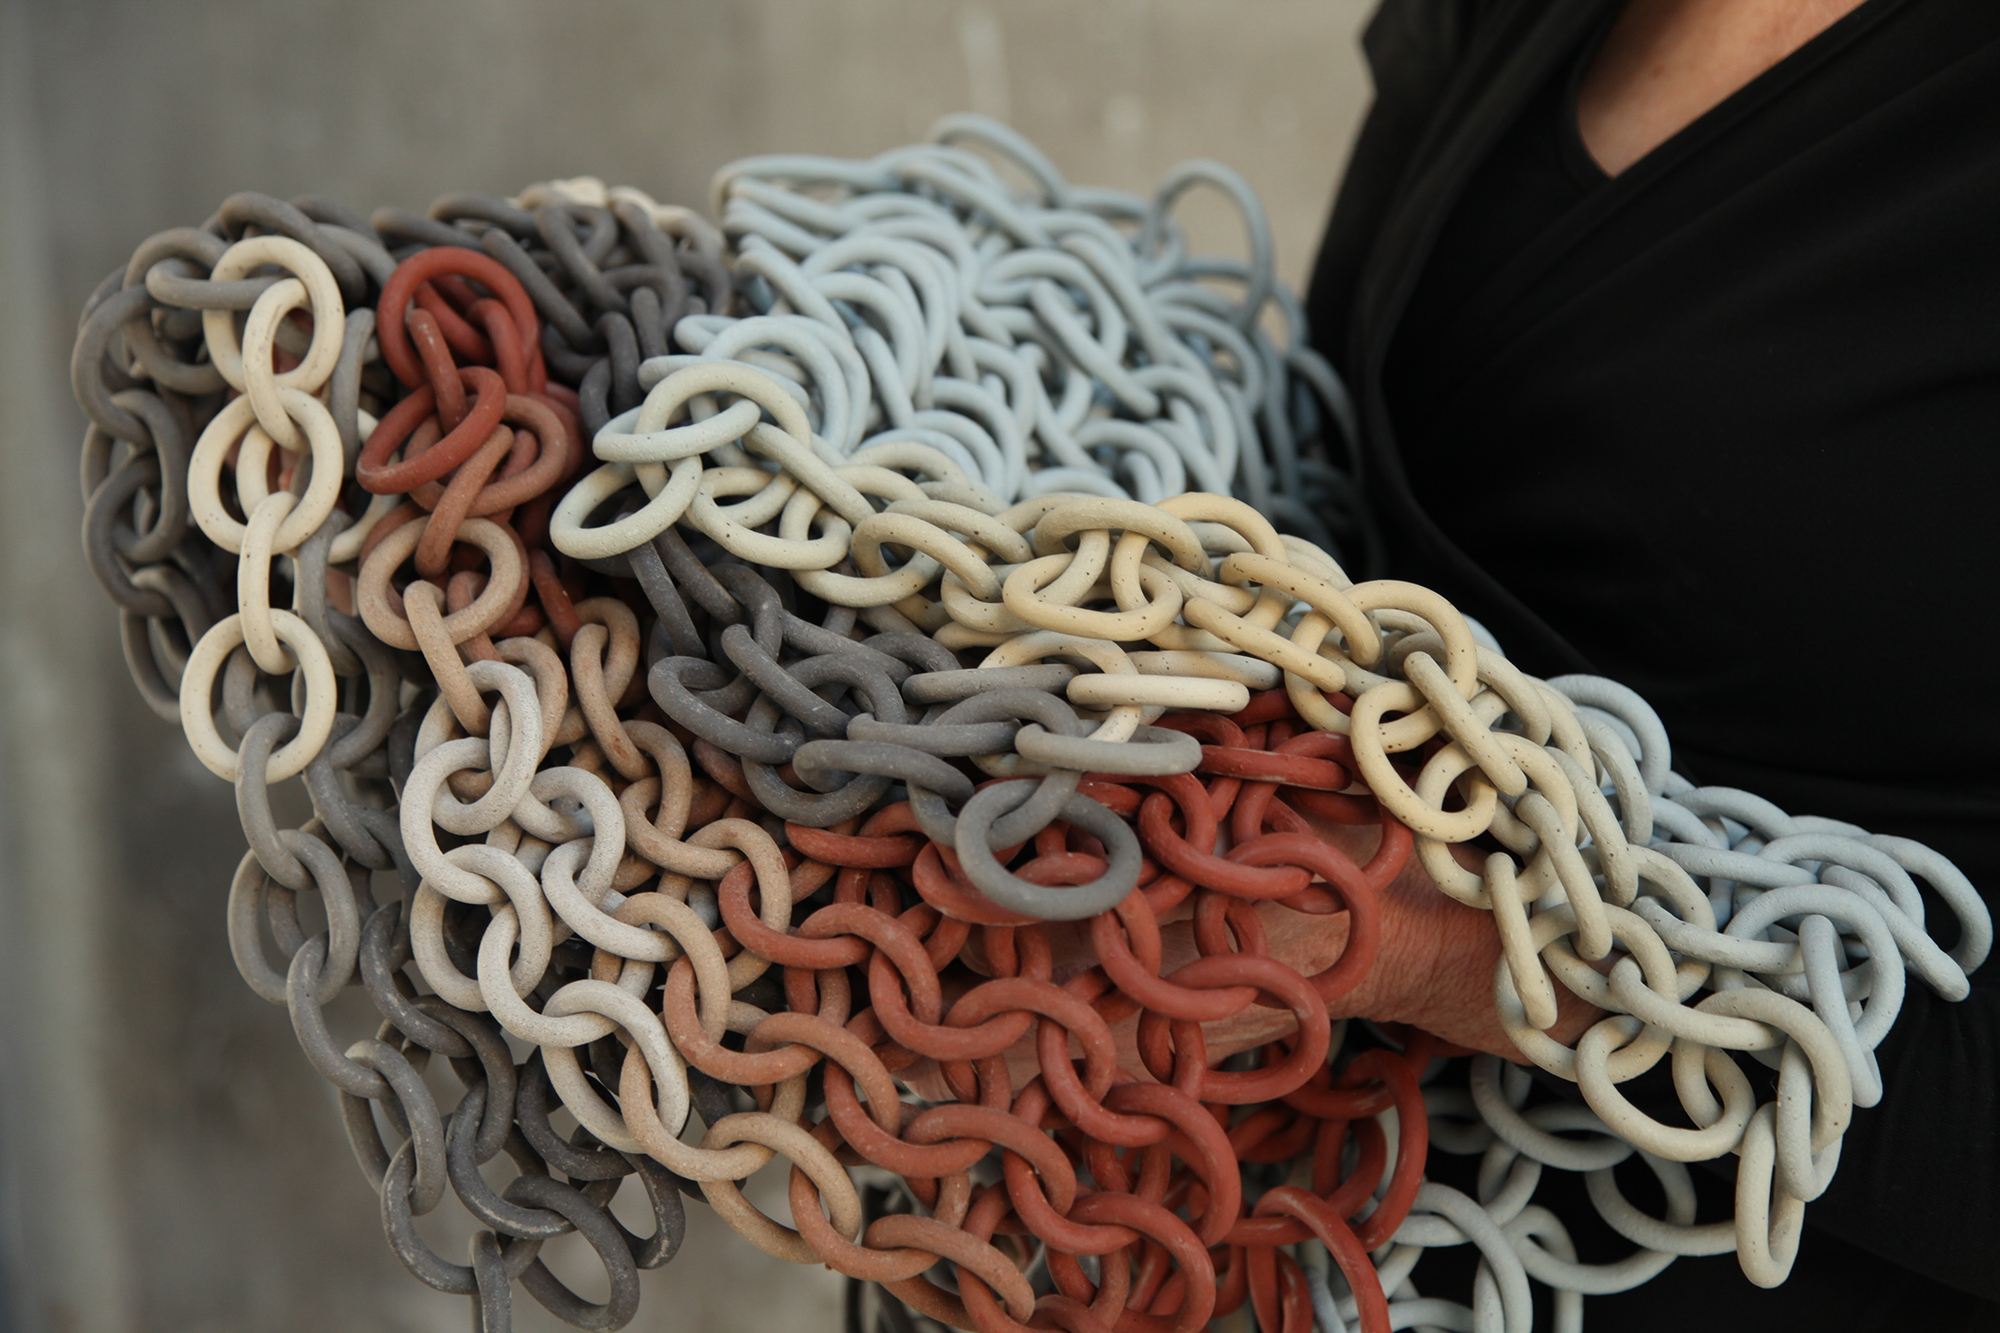 Meandering Ceramic Chains by Cecil Kemperink